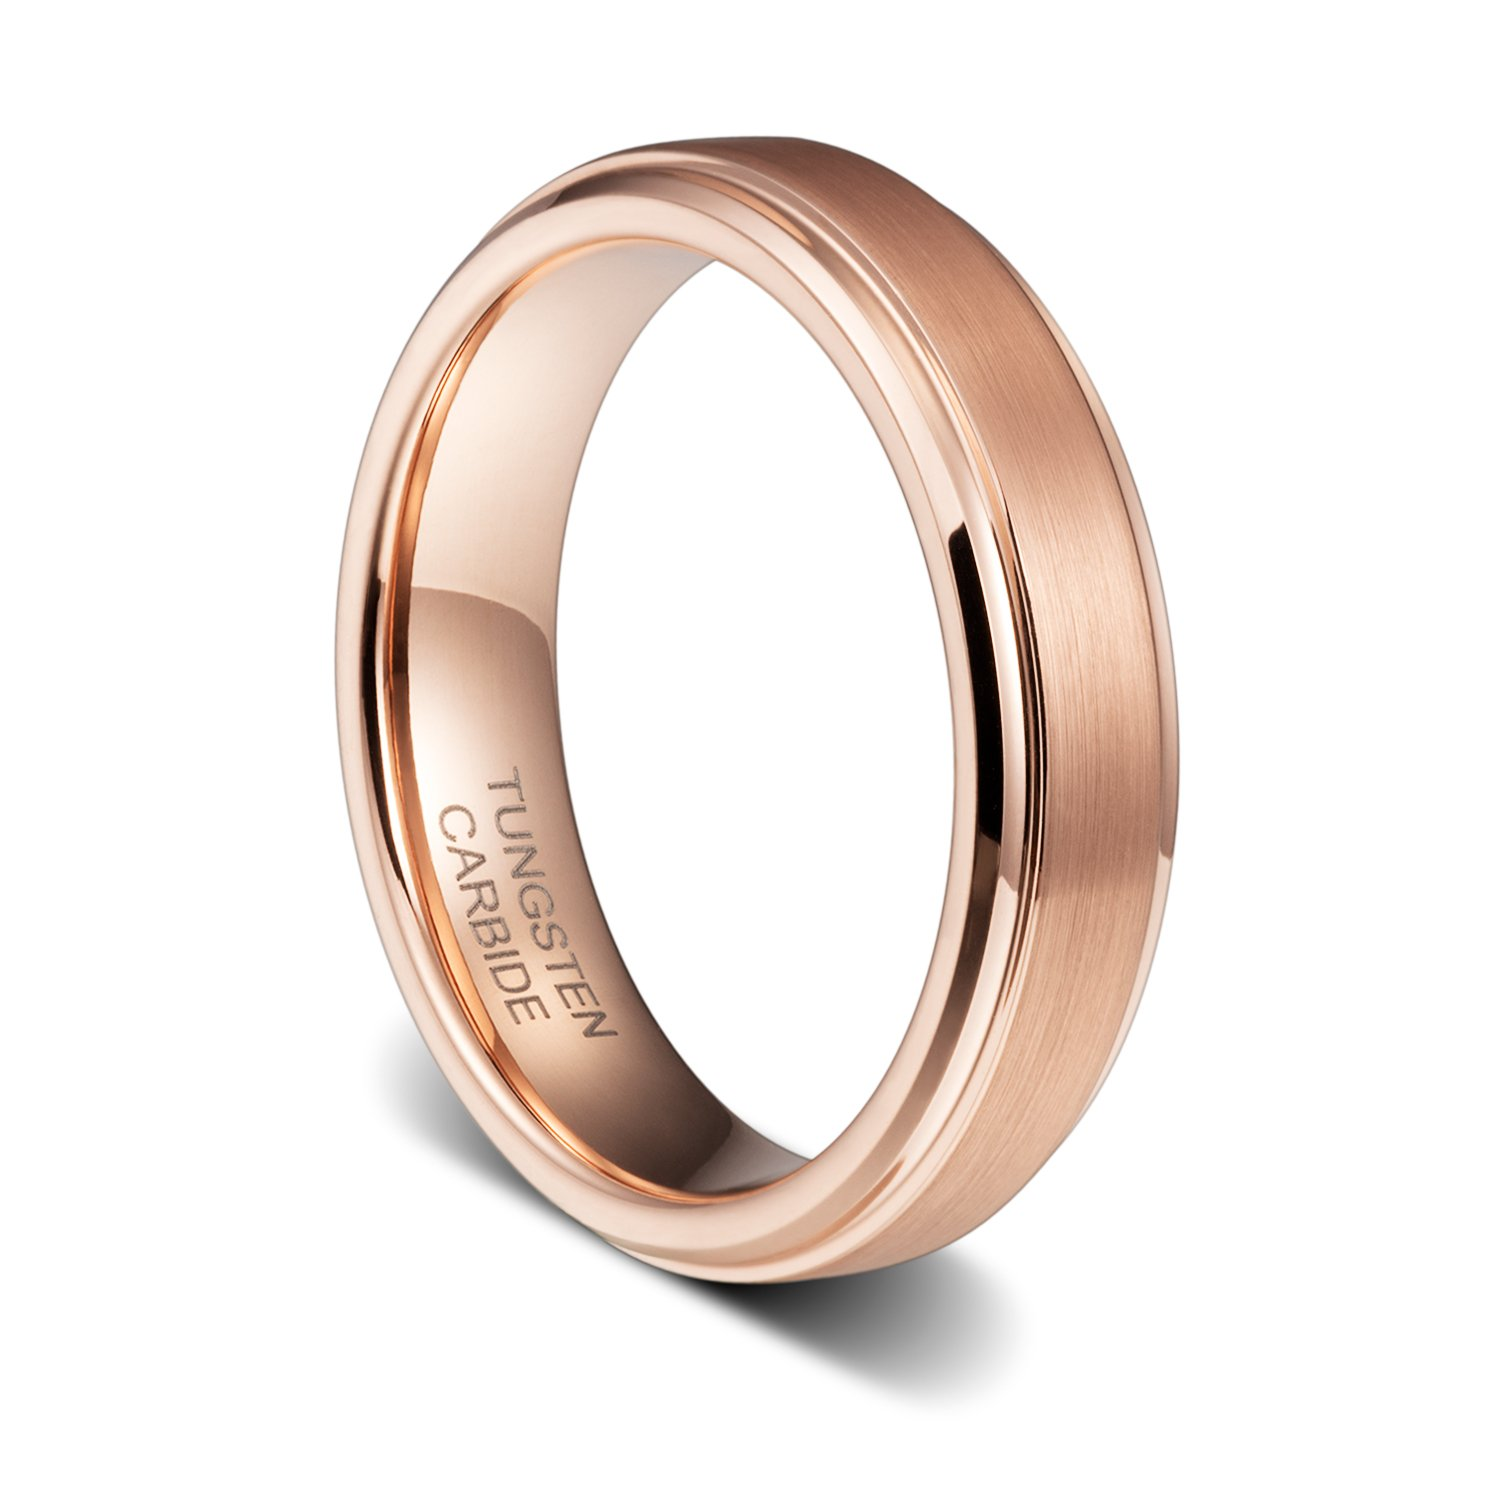 TUSEN JEWELRY 5mm Tungsten Carbide Ring Wedding Band Rose Gold Plated Brushed Step Edge Comfort Fit Size:7.5